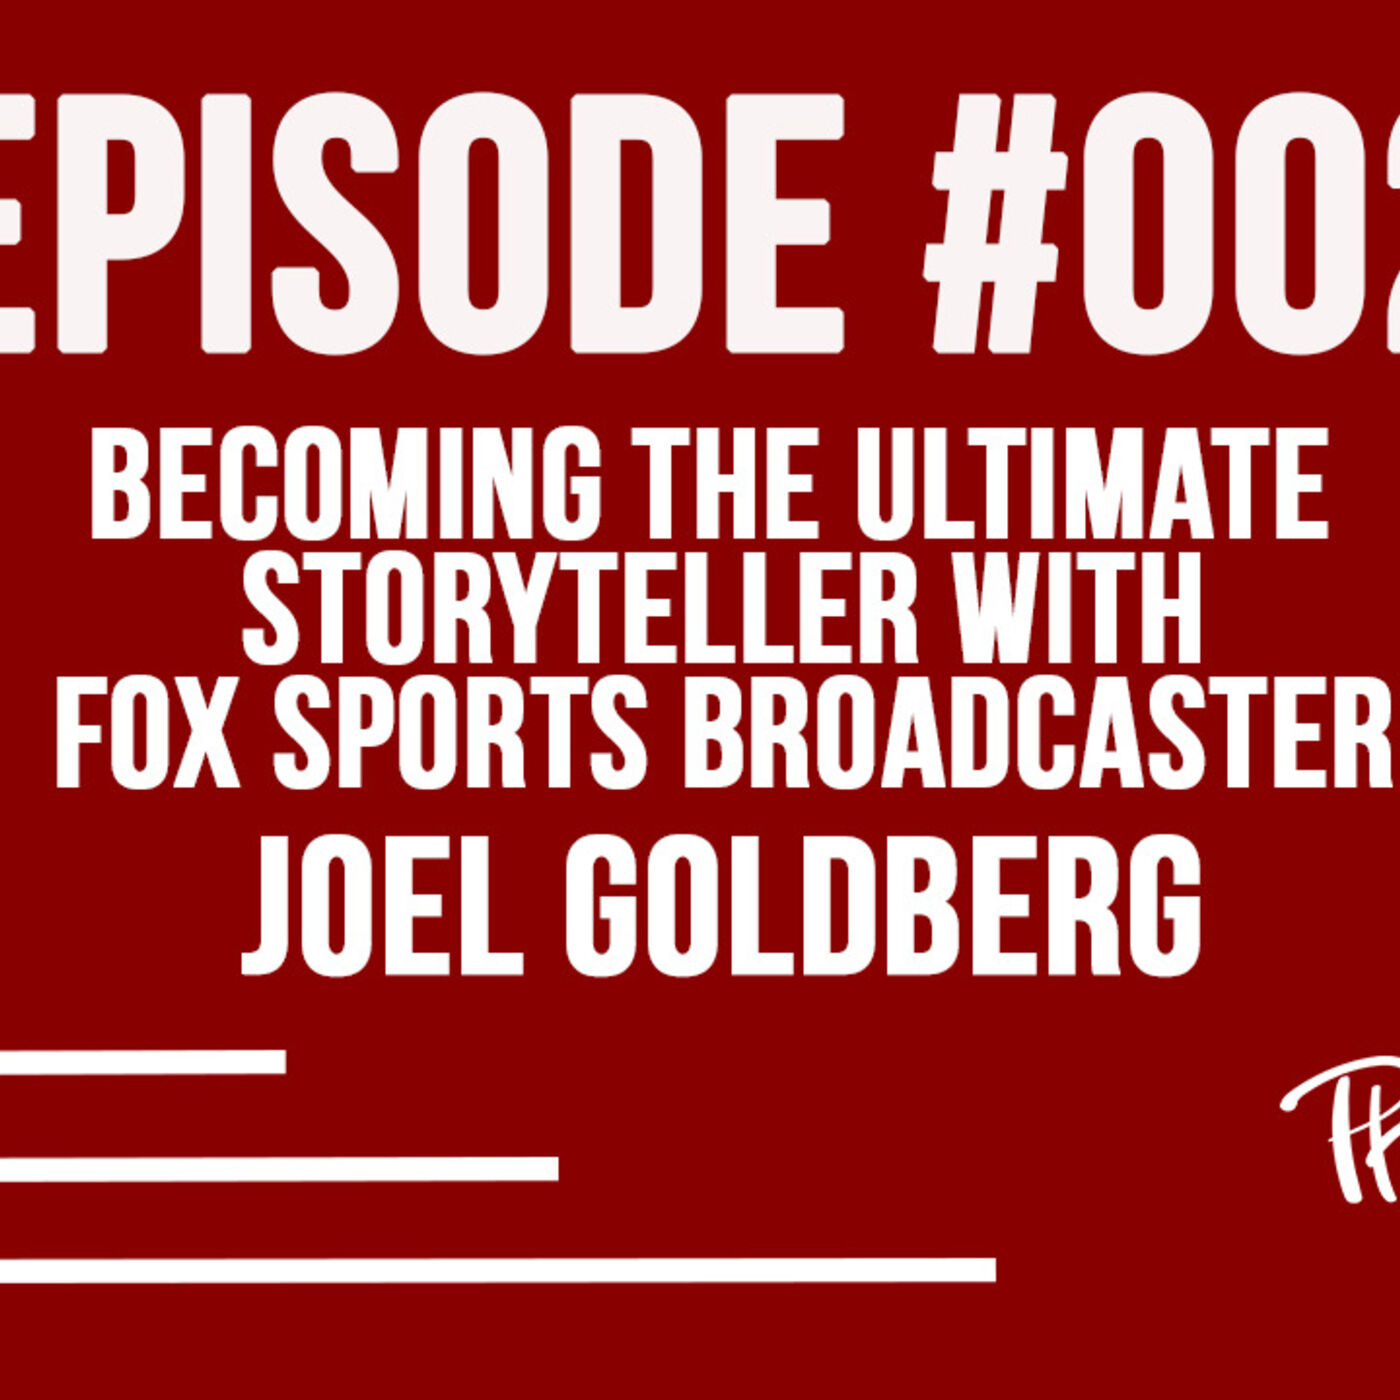 Becoming the ultimate storyteller with FOX Sports Broadcaster